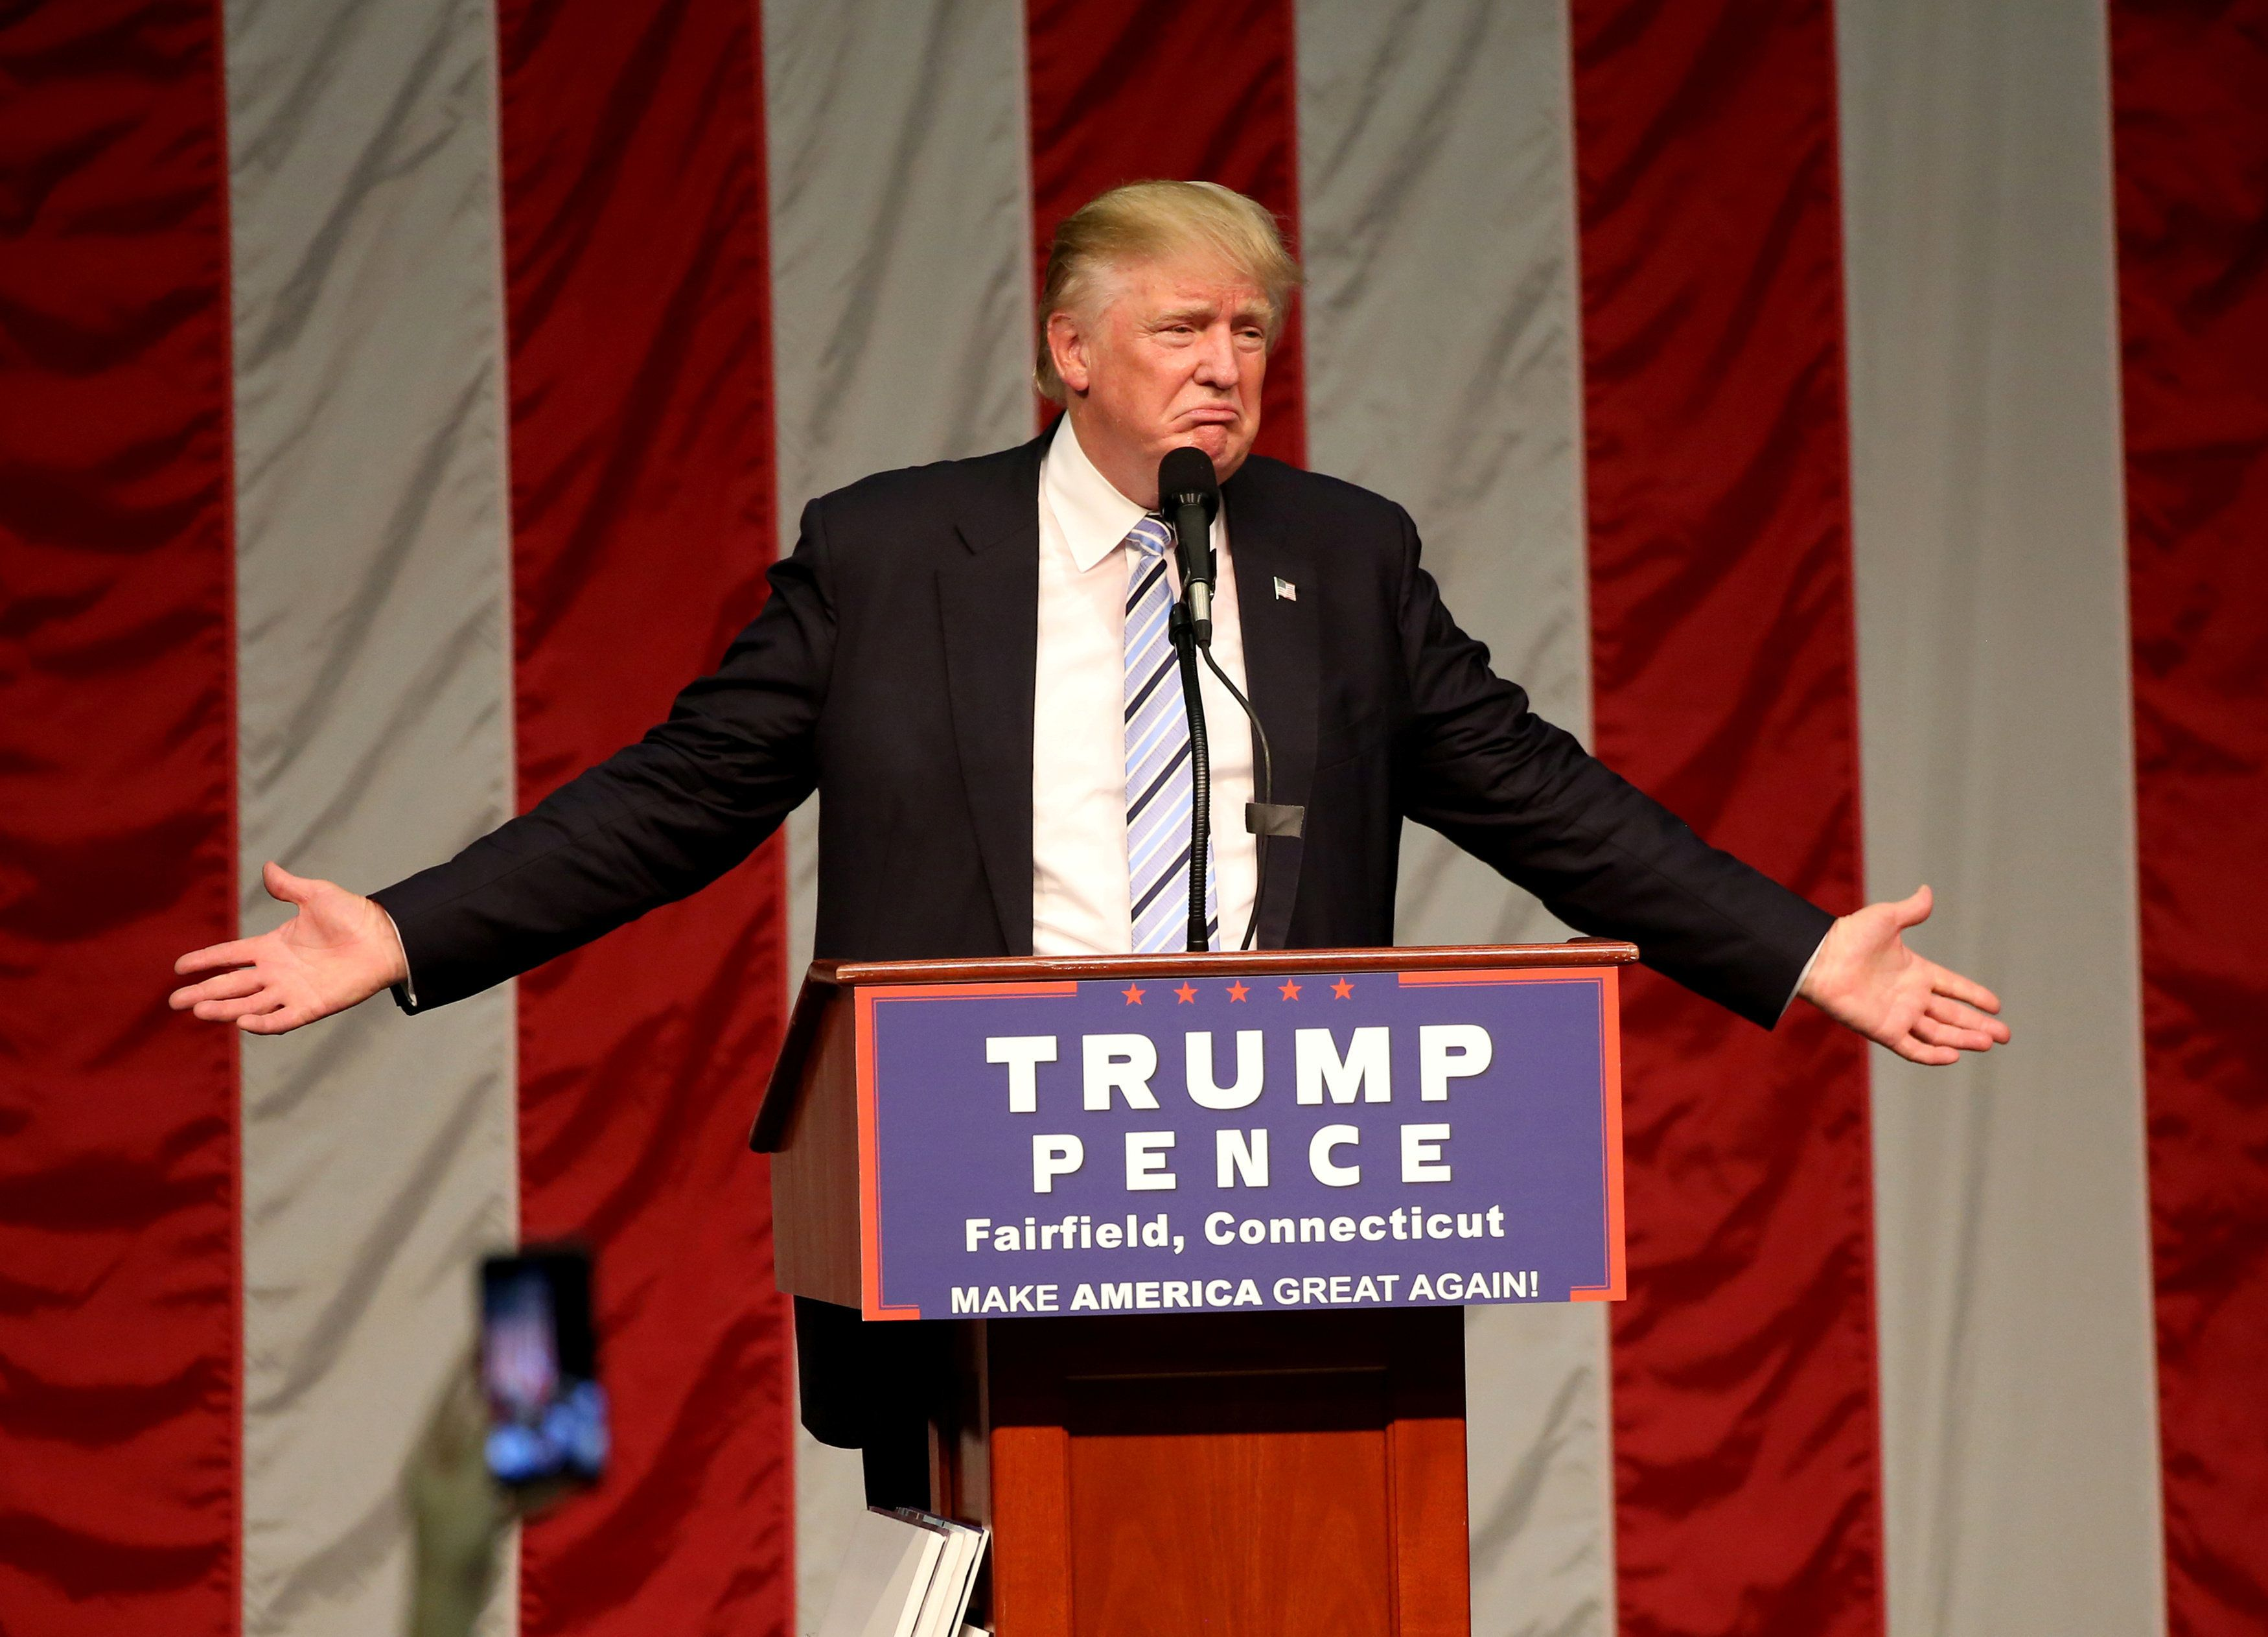 Donald Trumpis just being honest with America abouthis